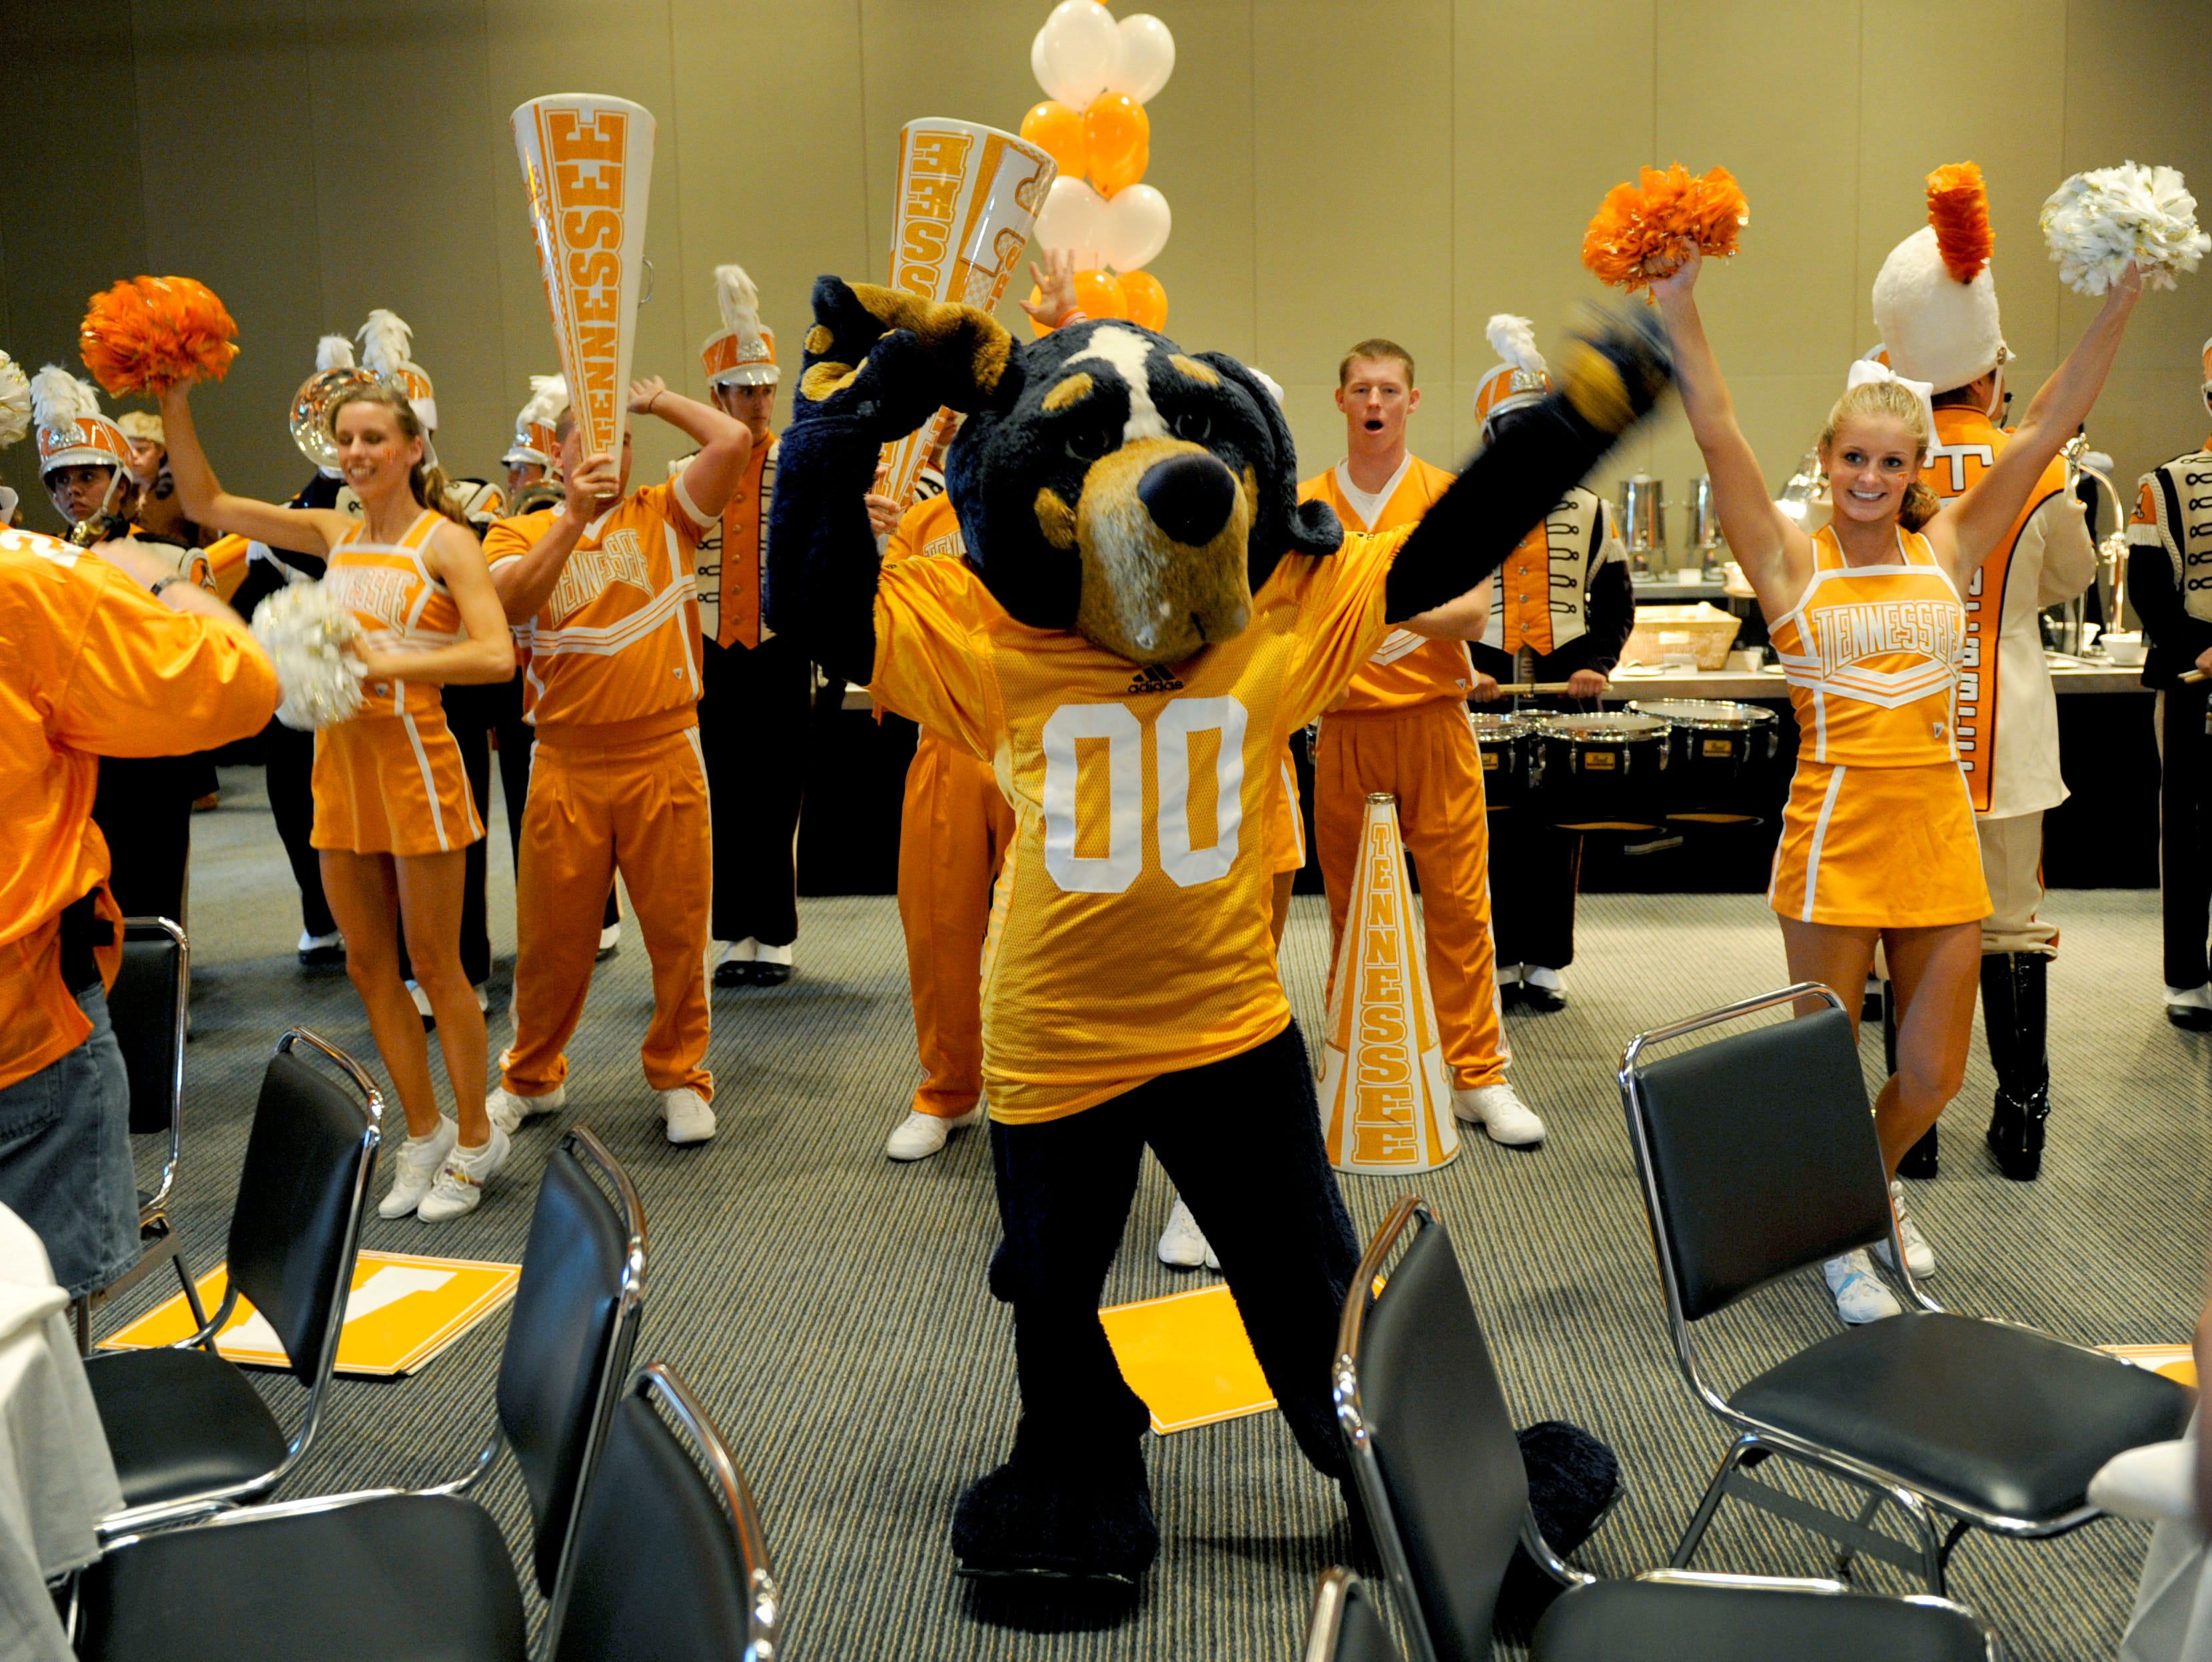 Smokey was joined by the Pride of the Southland Pep Band and the UT cheerleaders to entertain fans during a pre-game rally Friday, Aug. 31, 2012 at the Georgia Dome in Atlanta prior to the Chick-fil-A Kickoff Game.